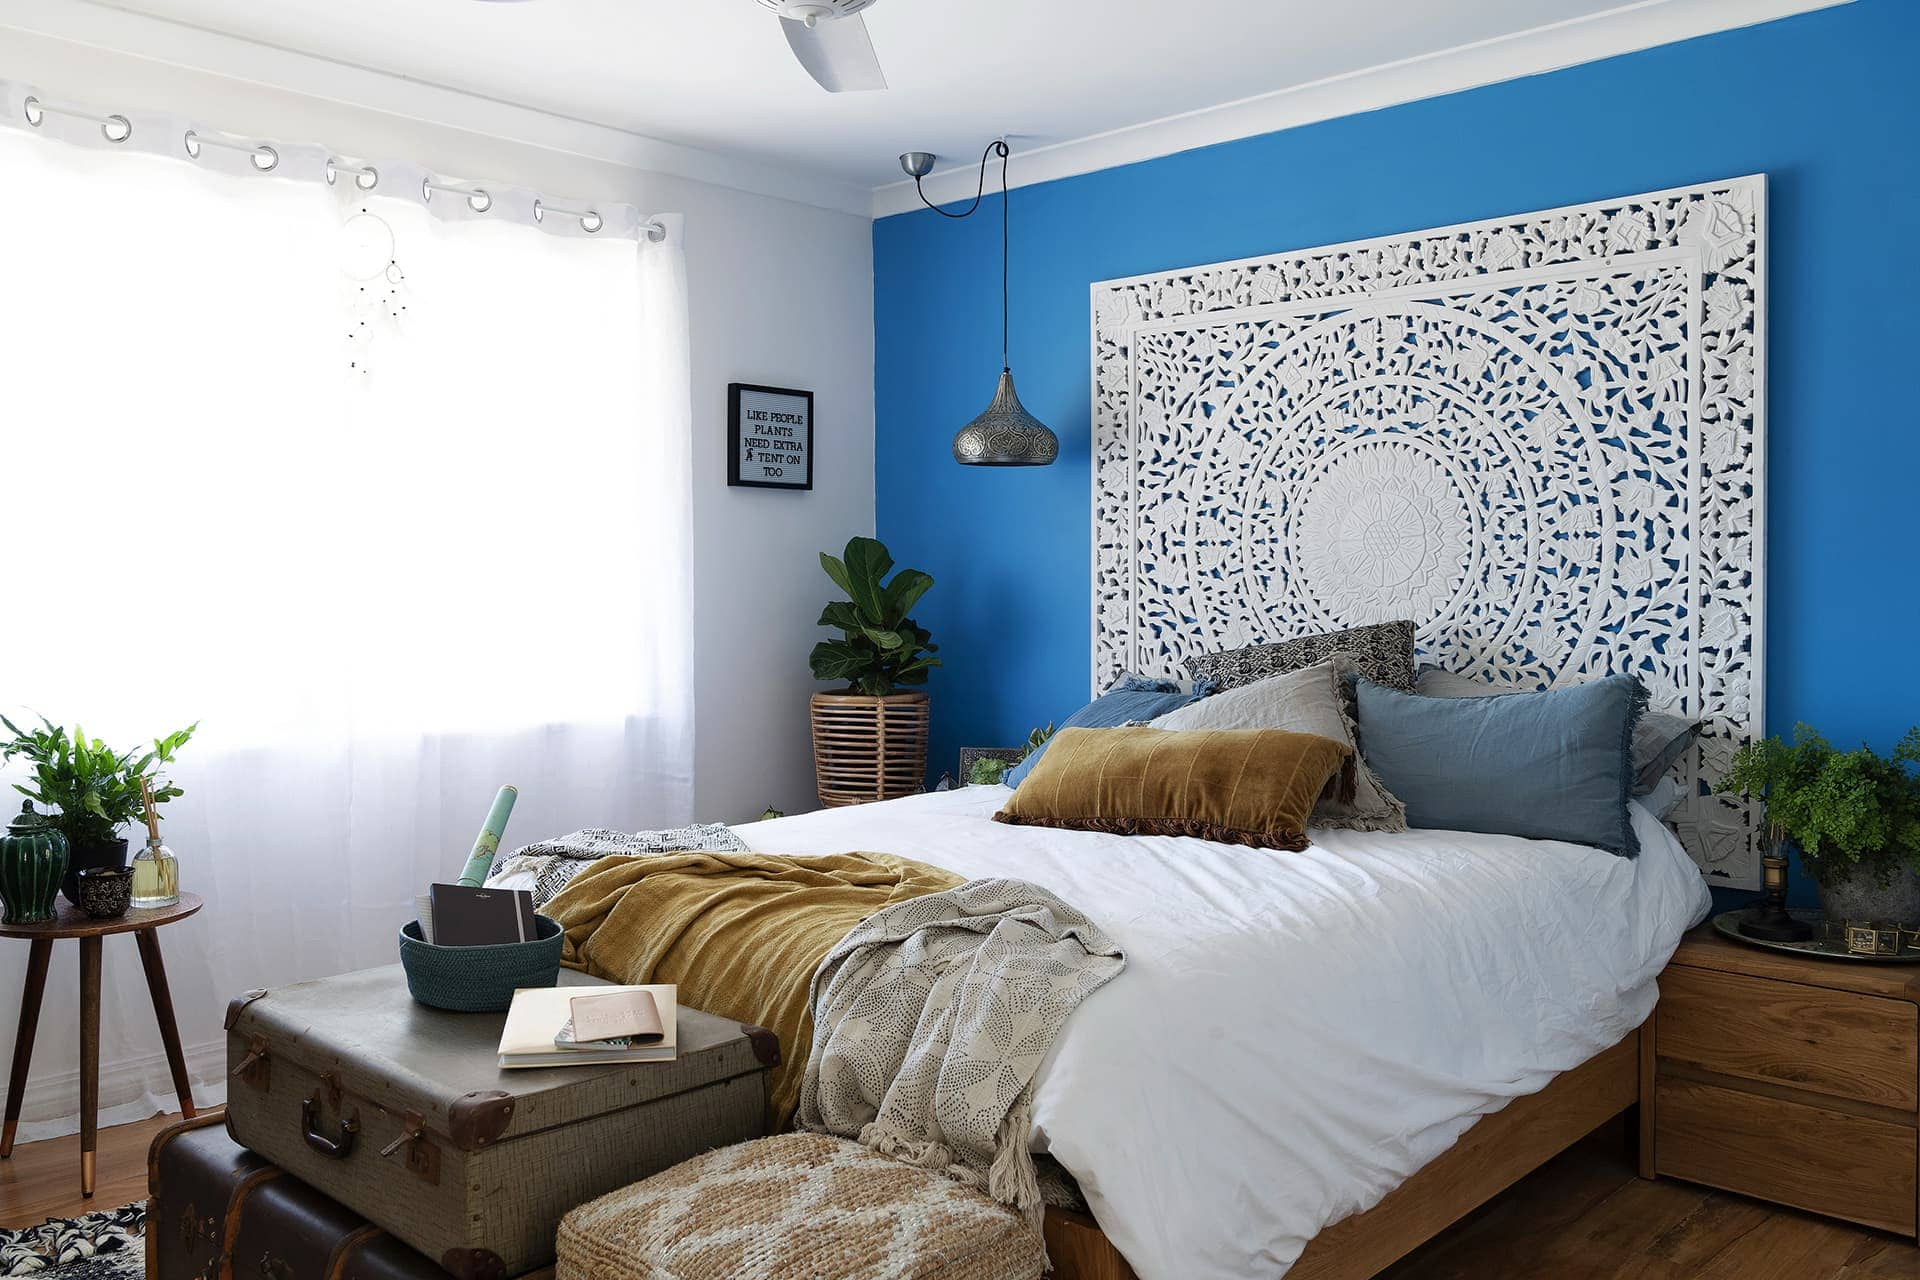 house rules 2019 eliza and mikaela boho bedroom with blue feature wall and suitcases as side tables